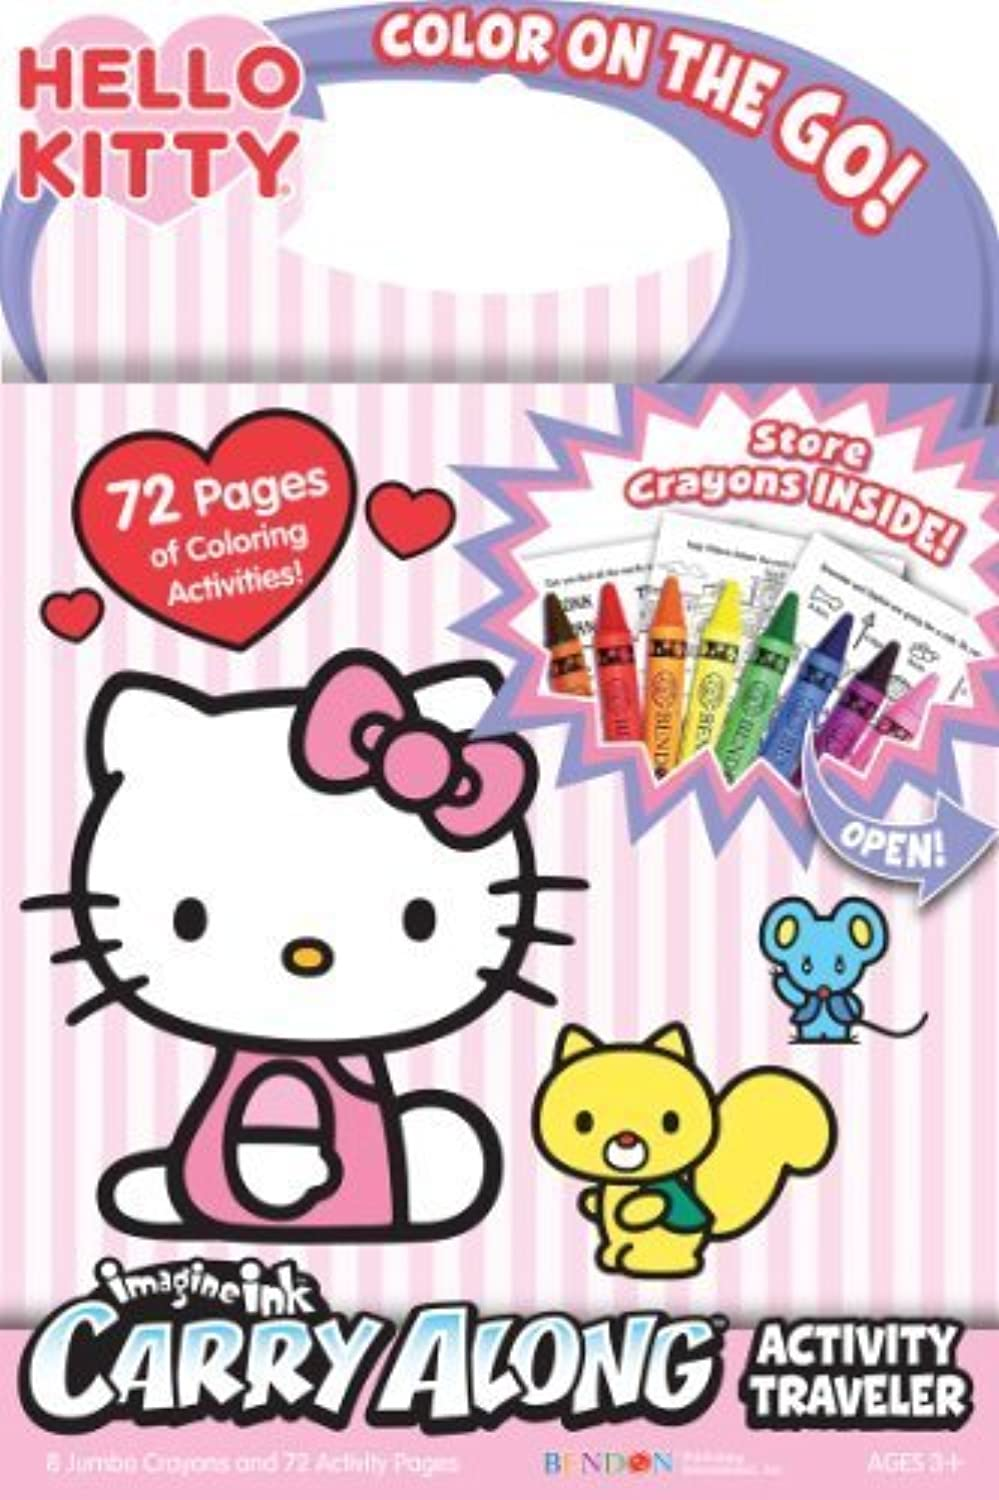 Bendon Hello Kitty Carry Along Activity Traveler book by Bendon Inc.